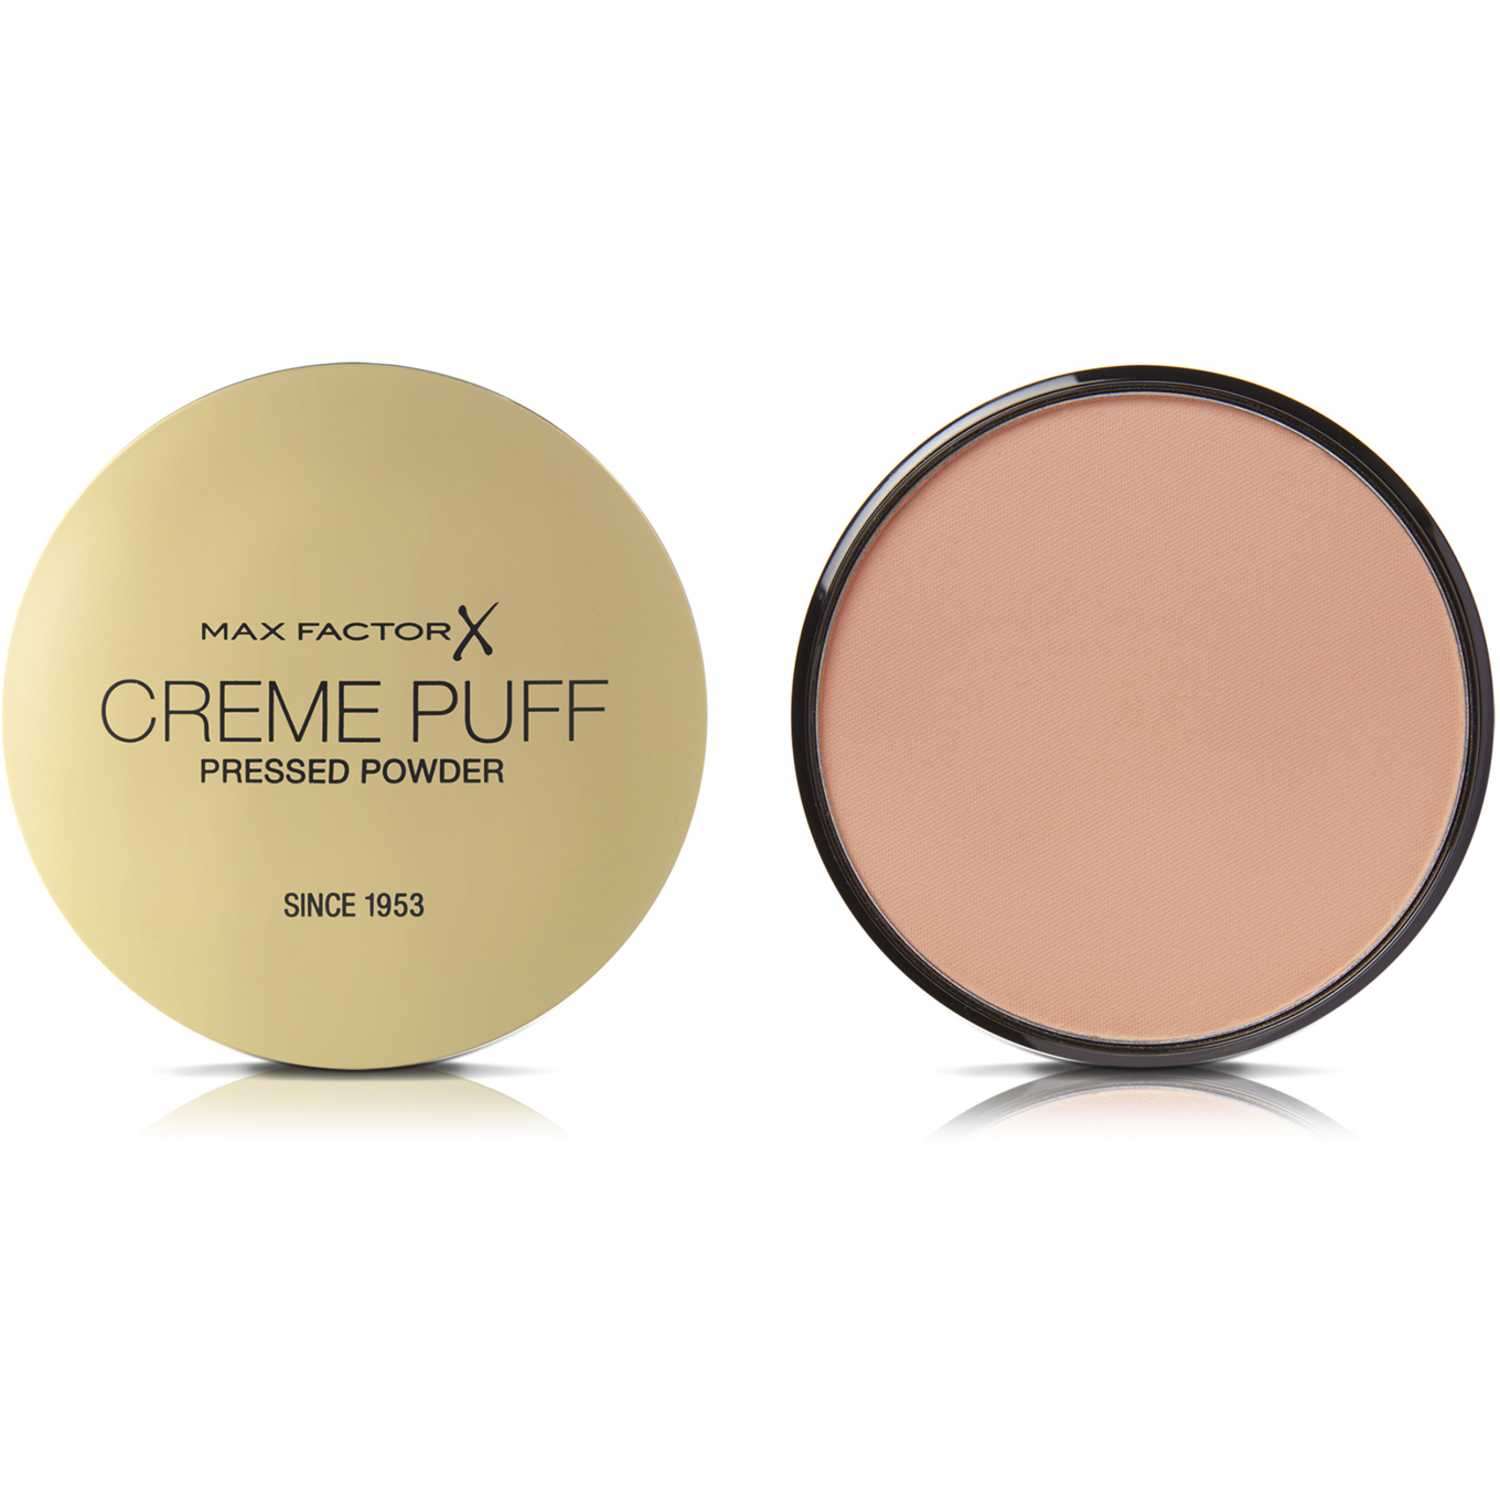 Polvo Compacto de Mujer Max Factor Candle Glow compacto creme puff n